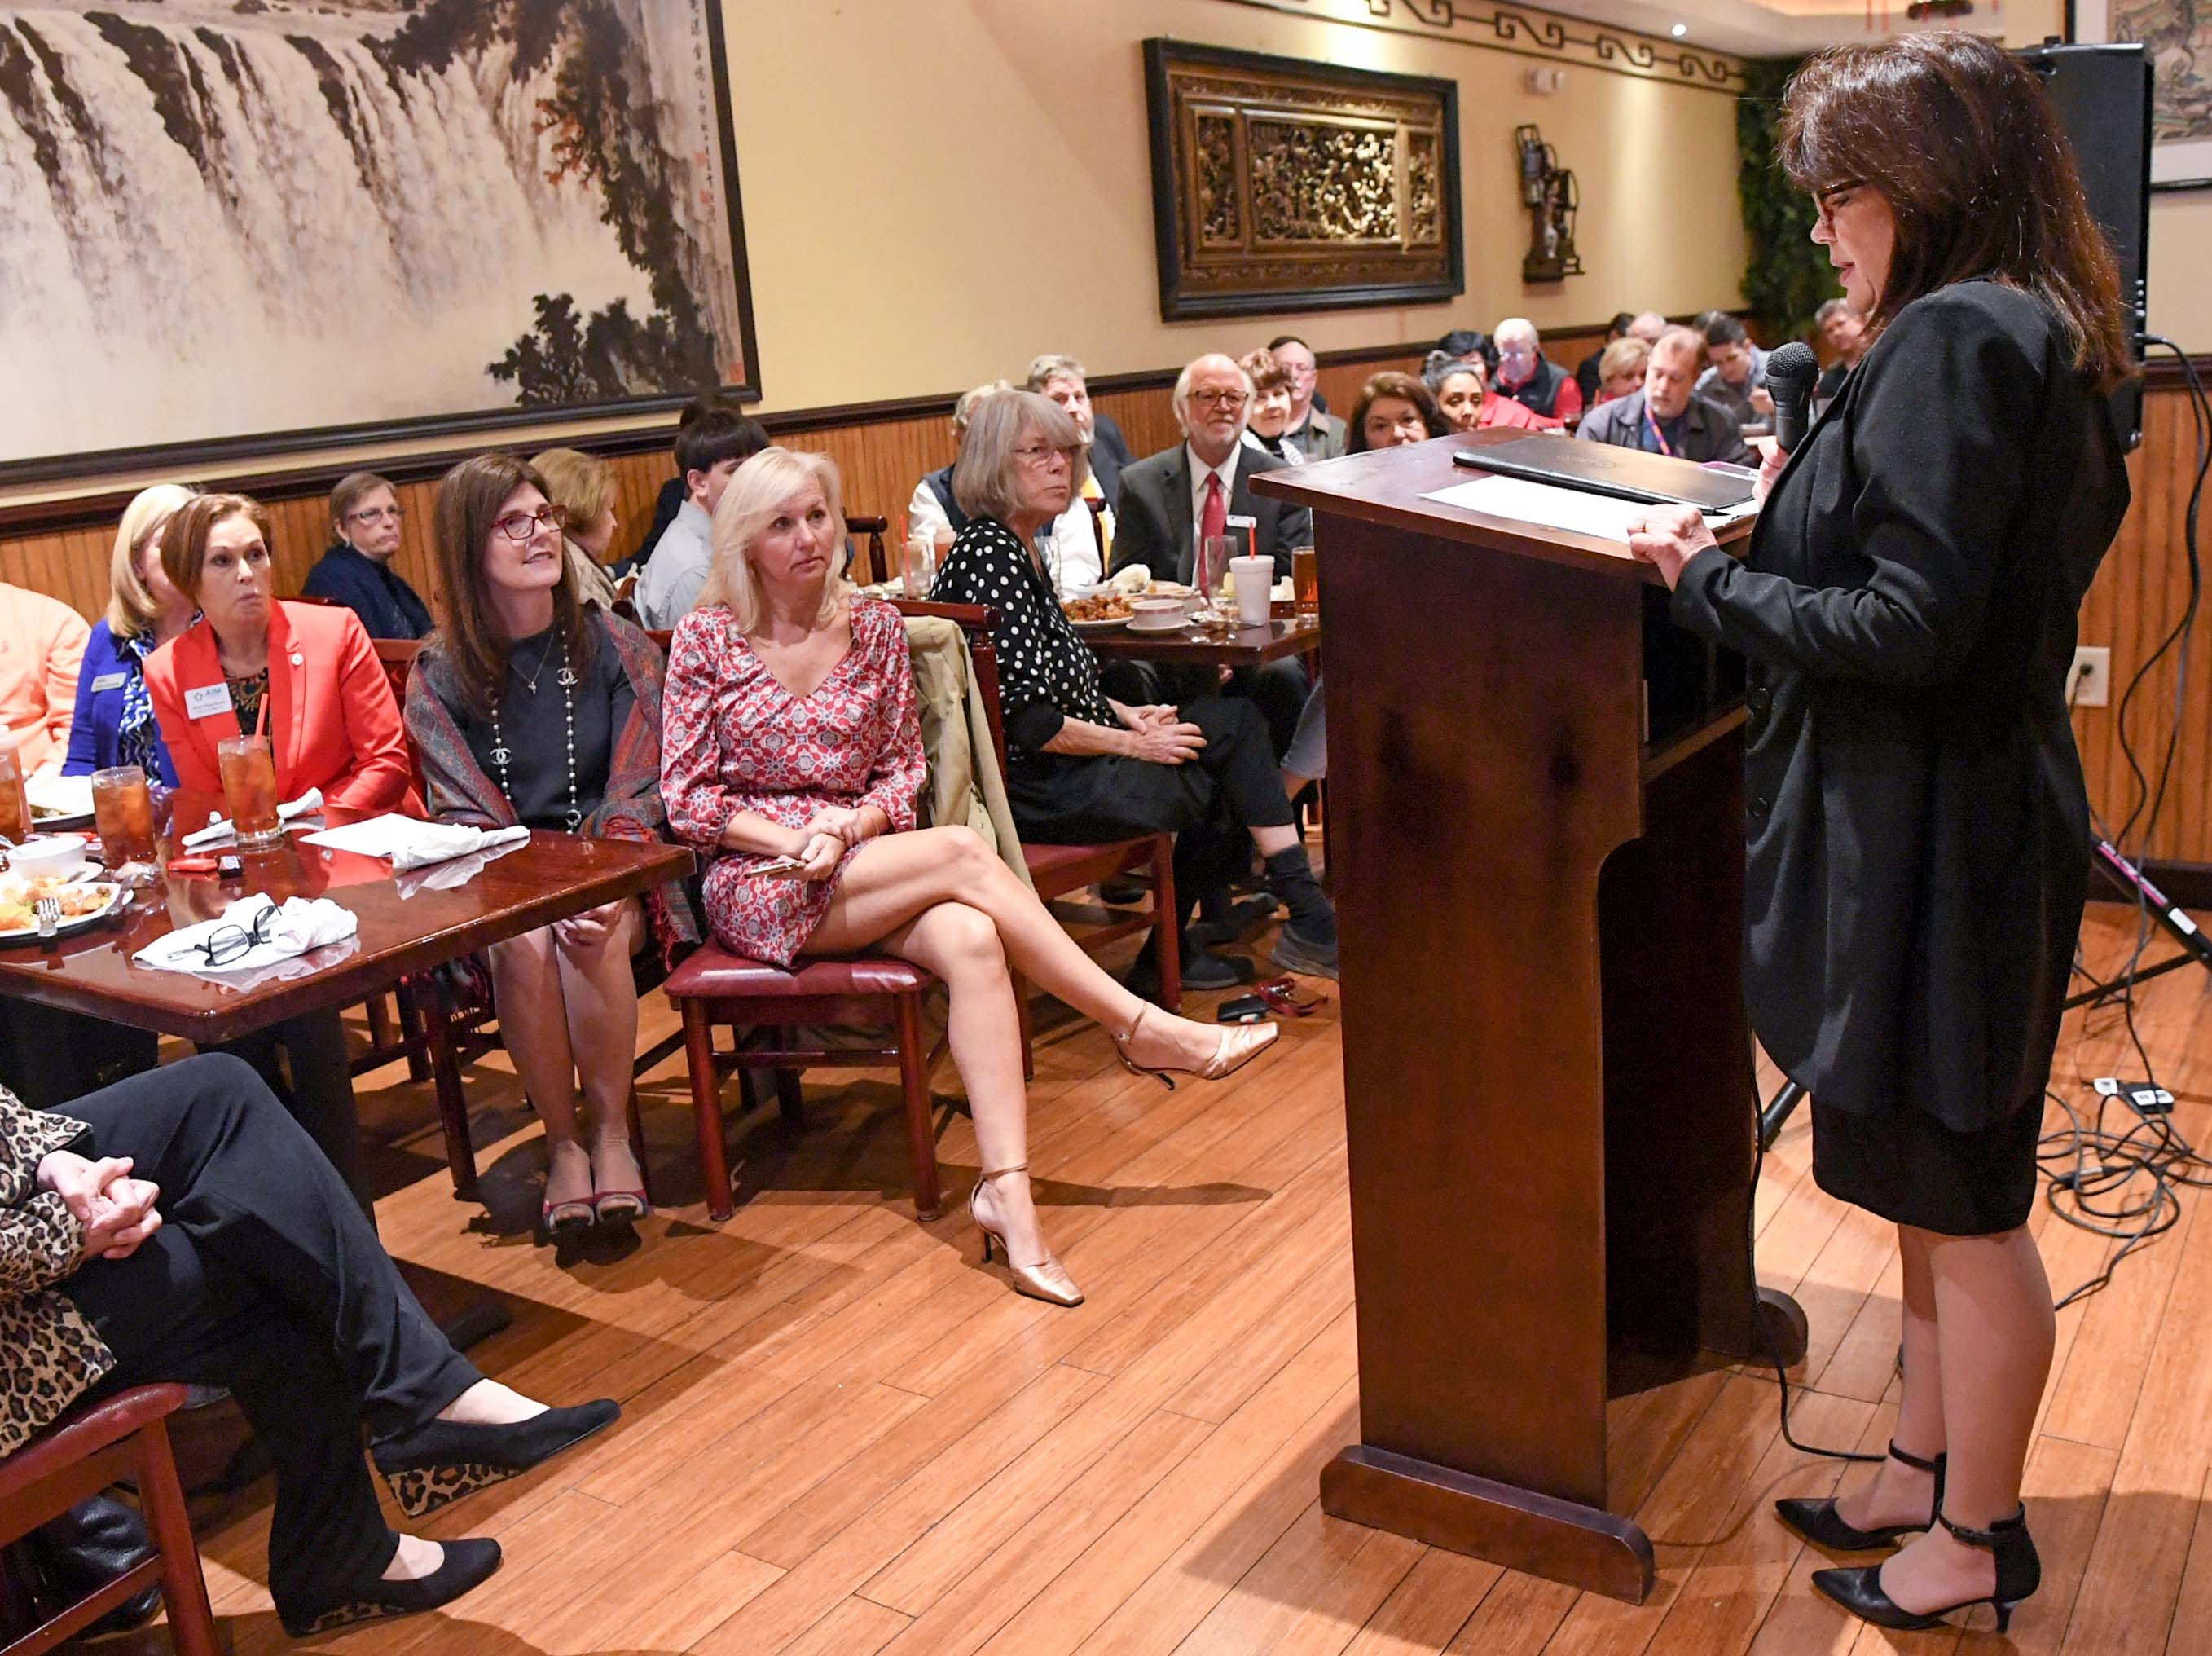 State Rep. Anne Thayer, right, Anderson House District 9, introduces State Lt. Gov. Pamela Evette, seated in middle on left, at the 1st Monday Club at Master's Wok in Anderson Monday.